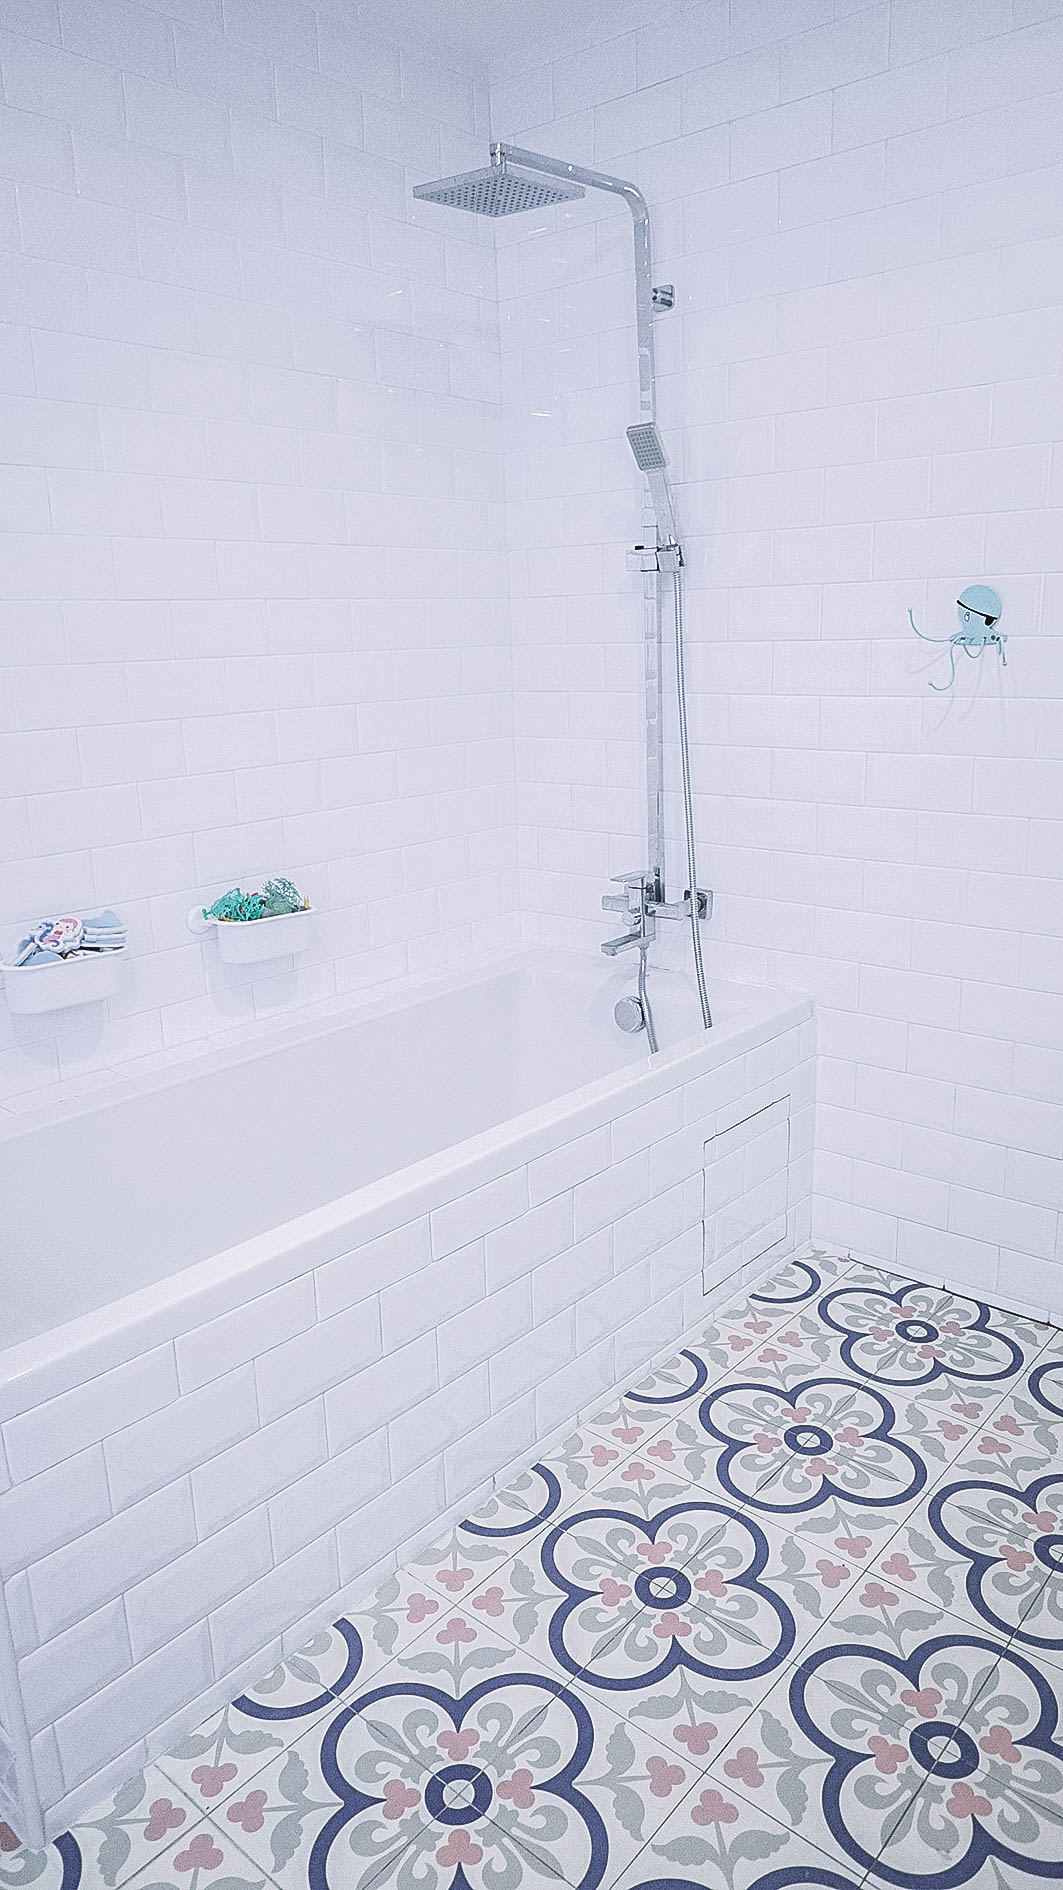 Cool Rain Shower Bathtub Graphic Tiles